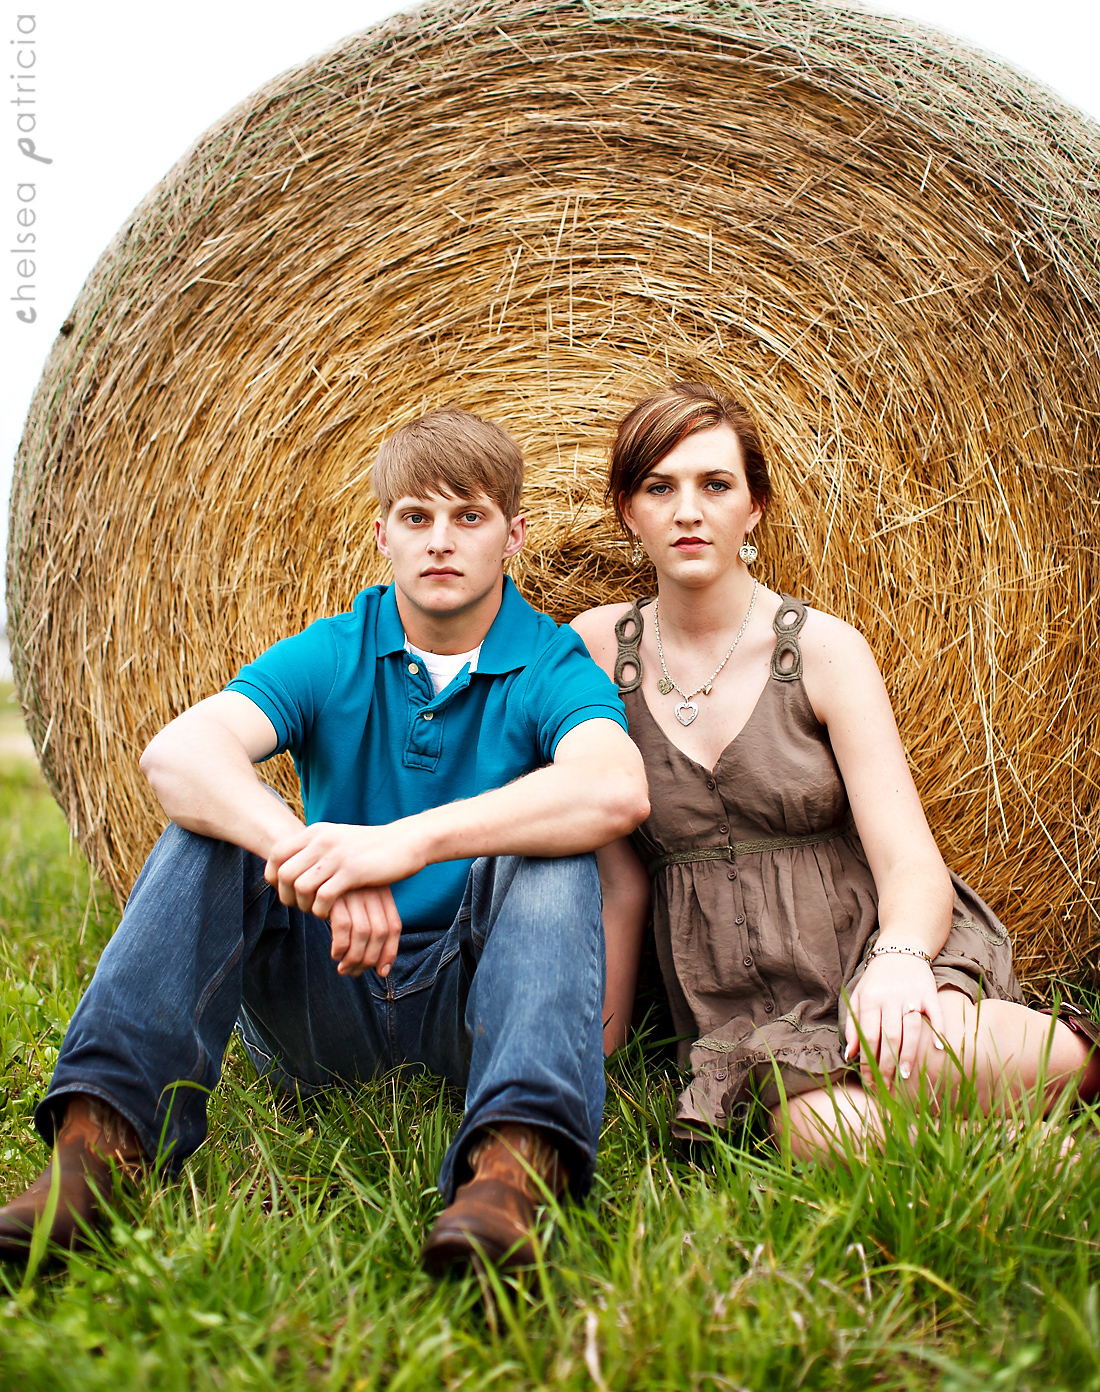 030511-country-style-engagement-photography-atlanta-ga.jpg